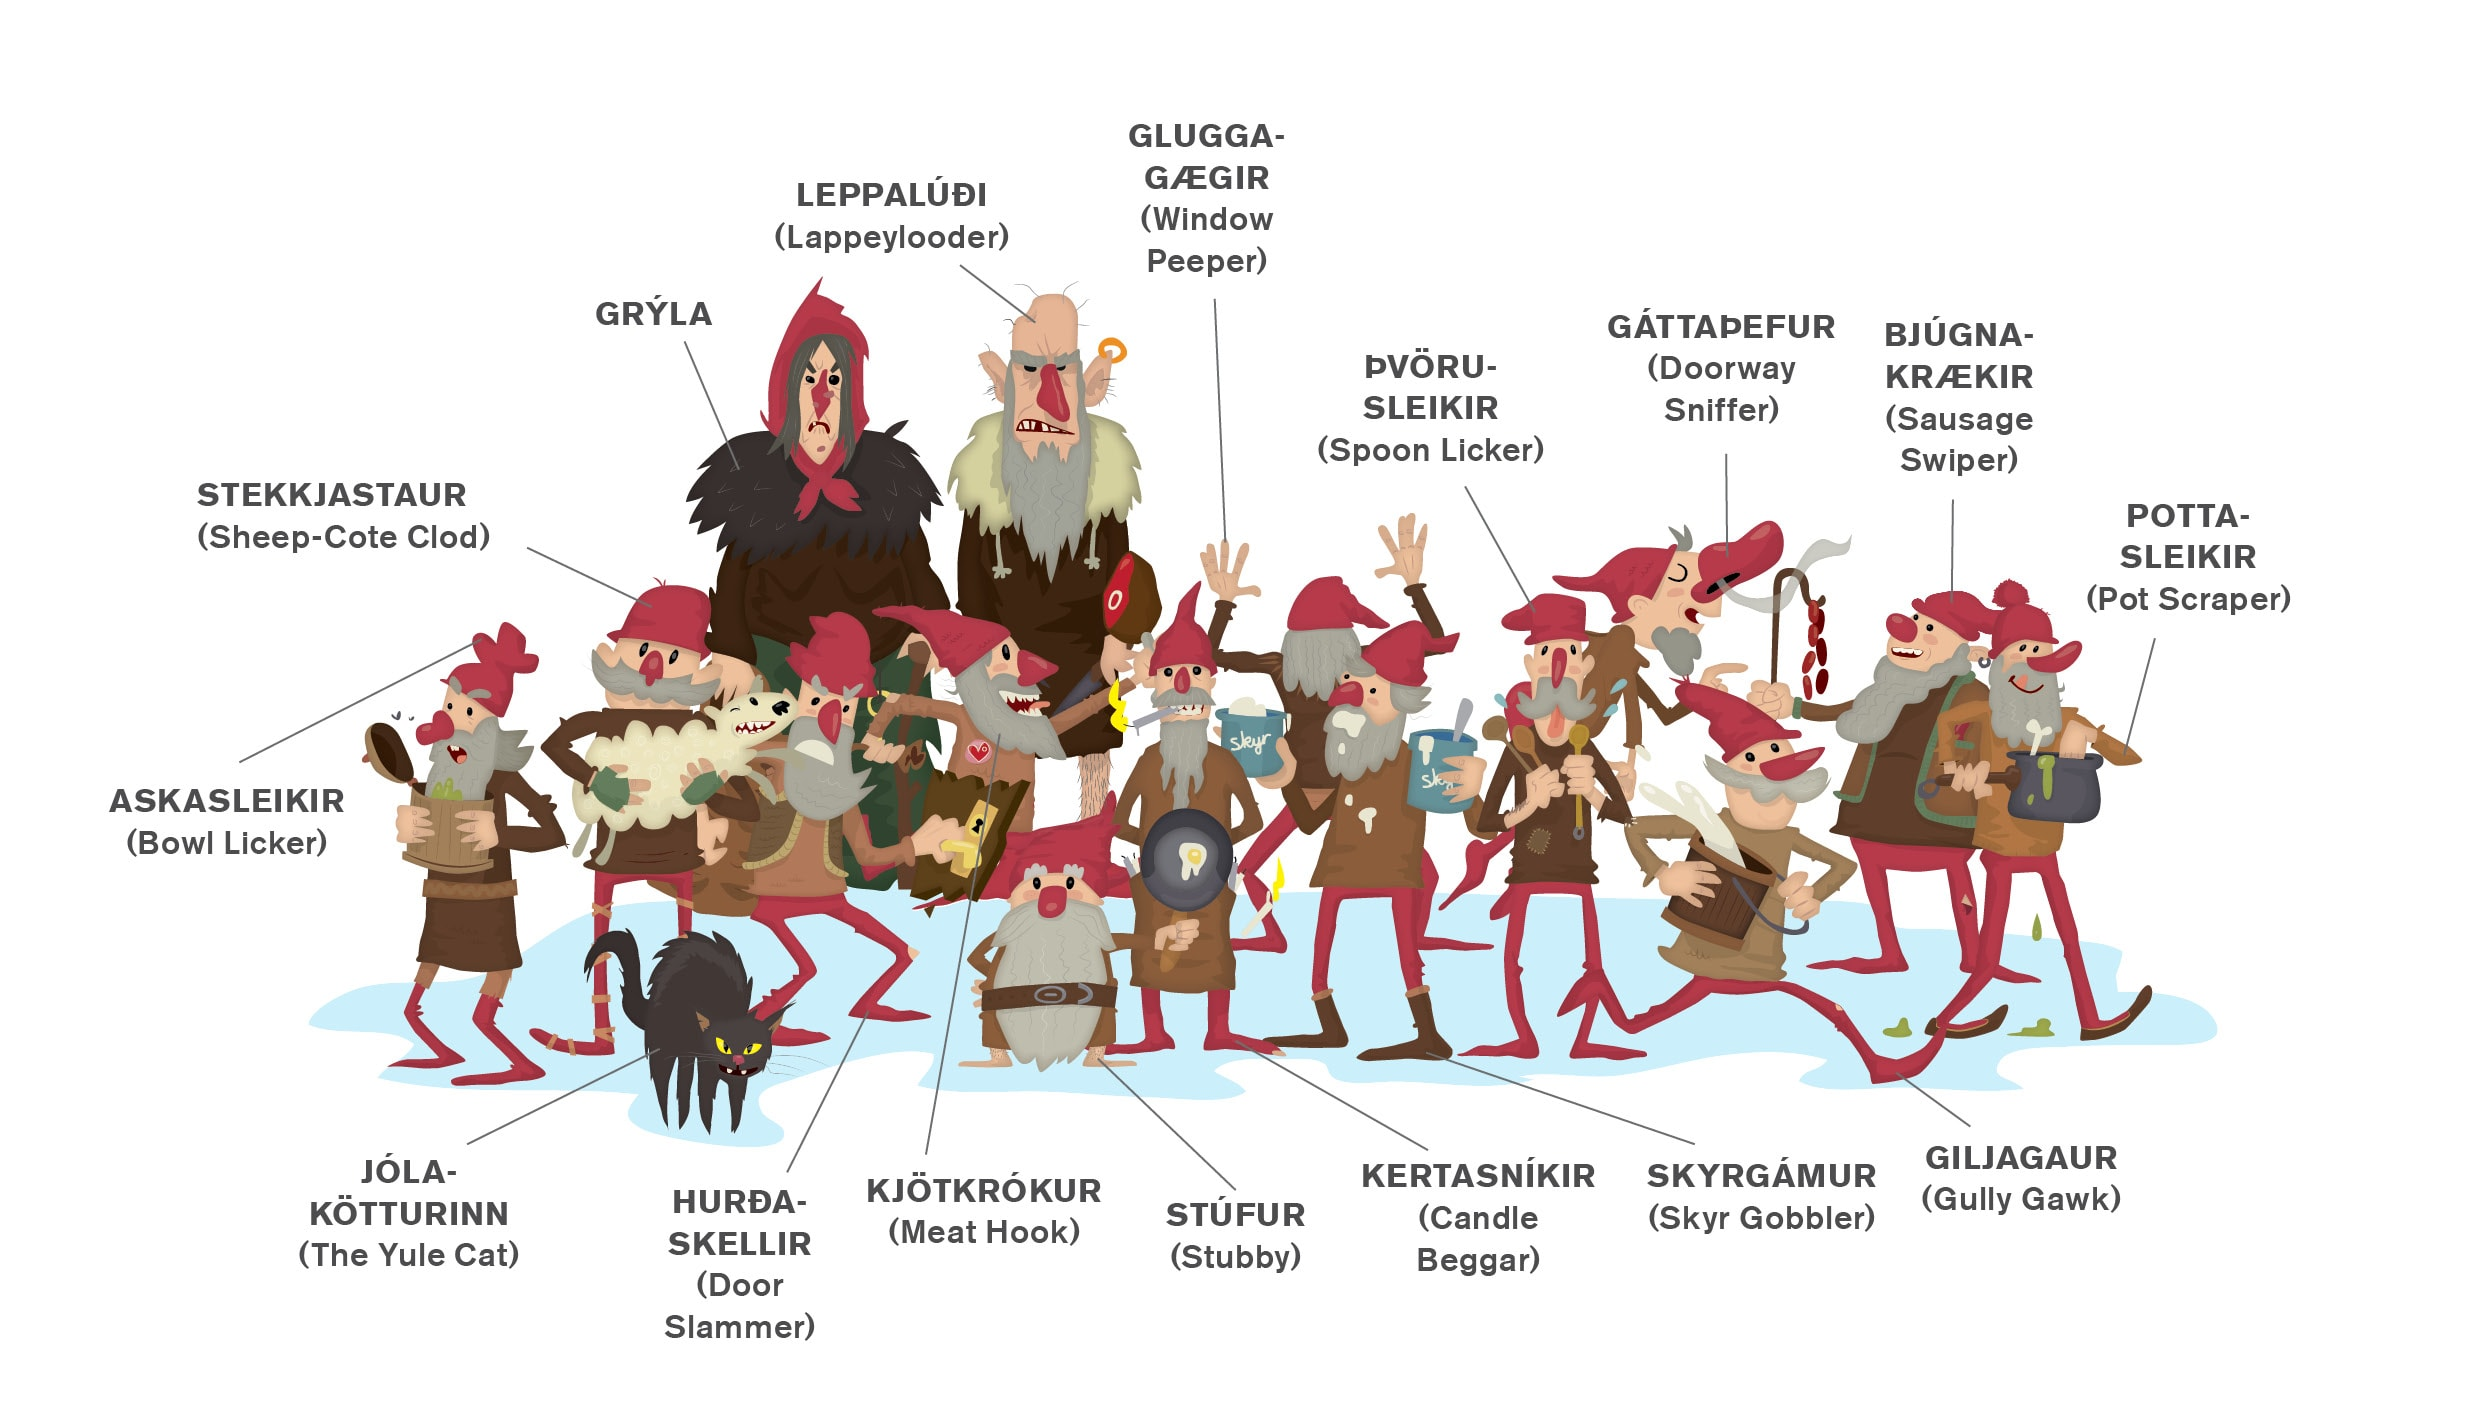 a graphic showing all of the Yule lads in character, from the pot scraper to the window peeper and skyr gobbler